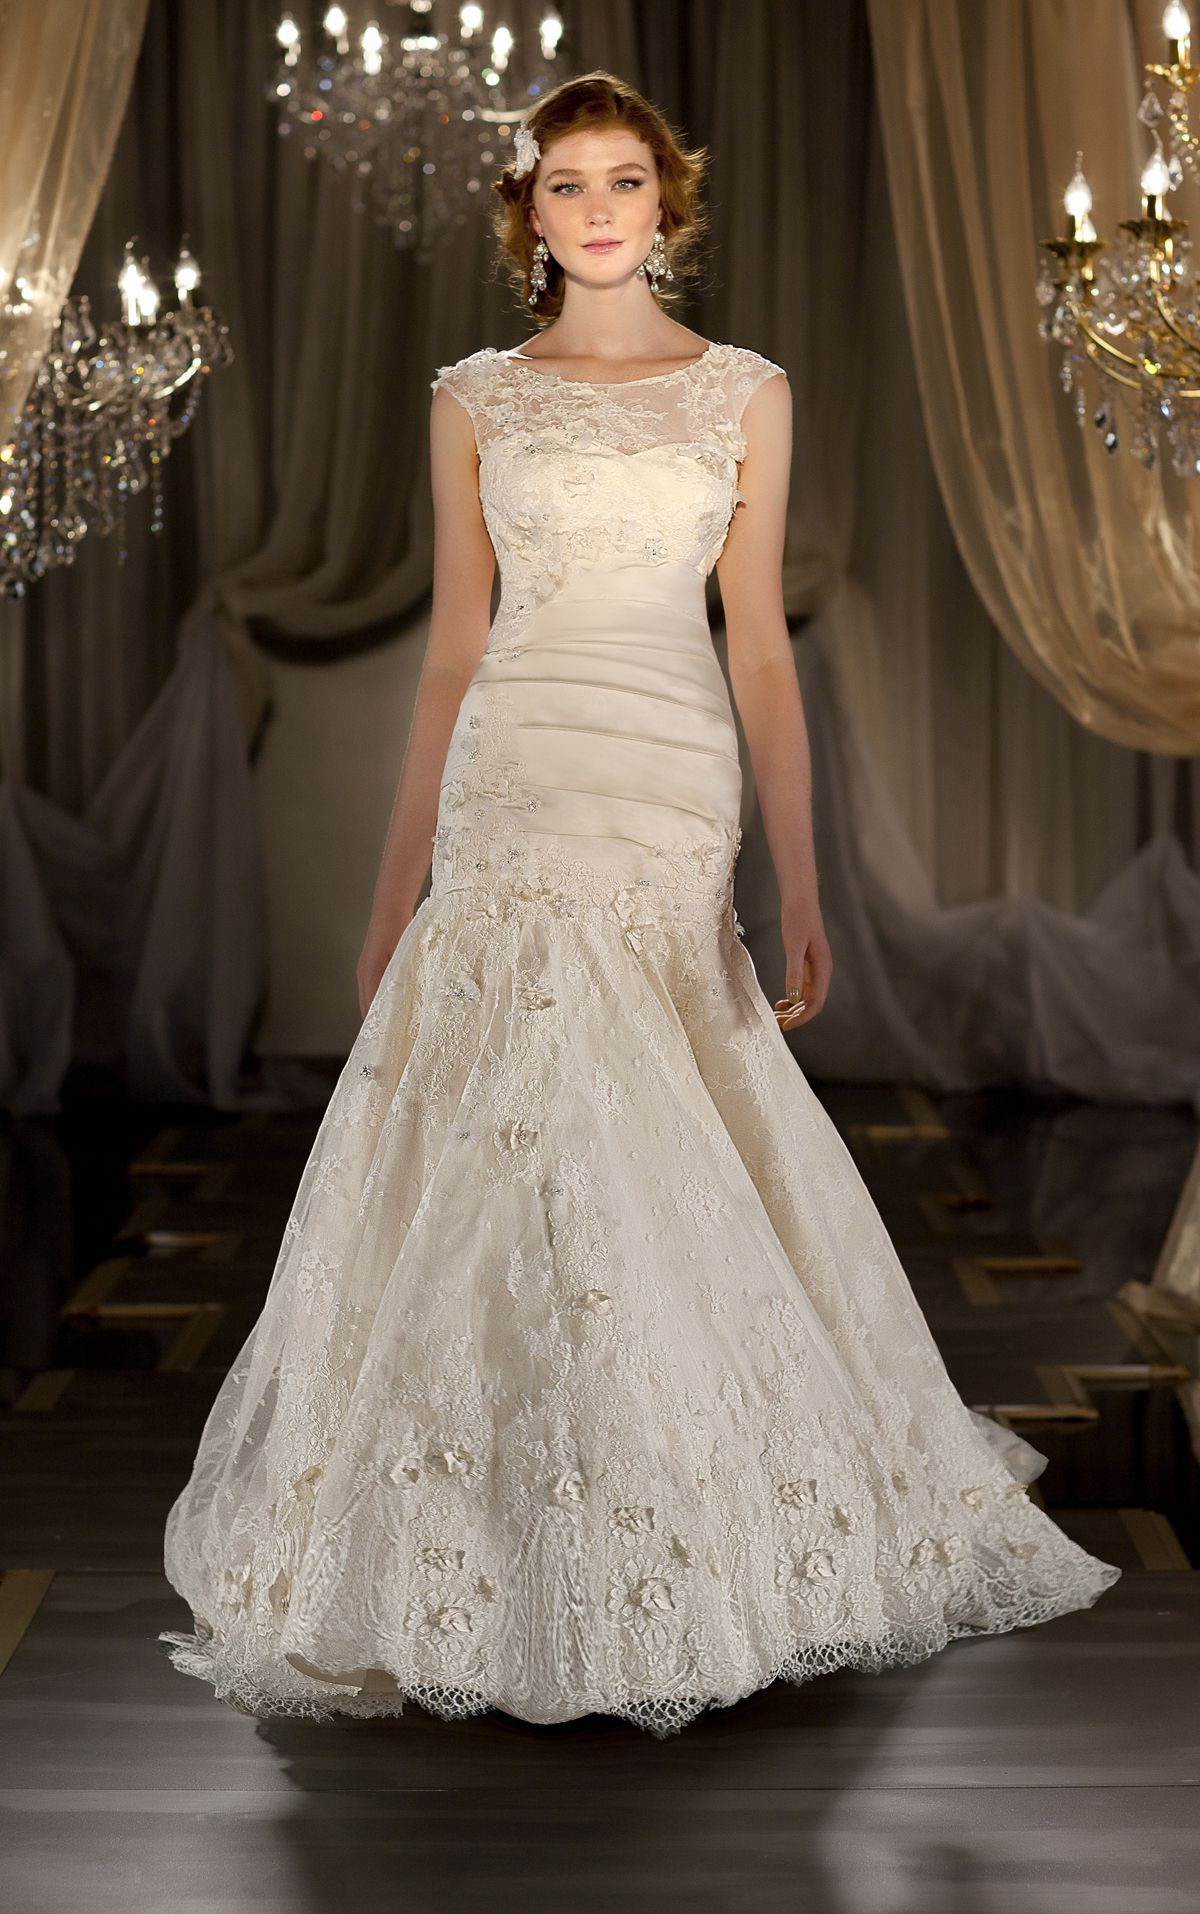 Removable Illusion Bateau Neckline Lace Overlay With Sleeves Martina Liana Style 414